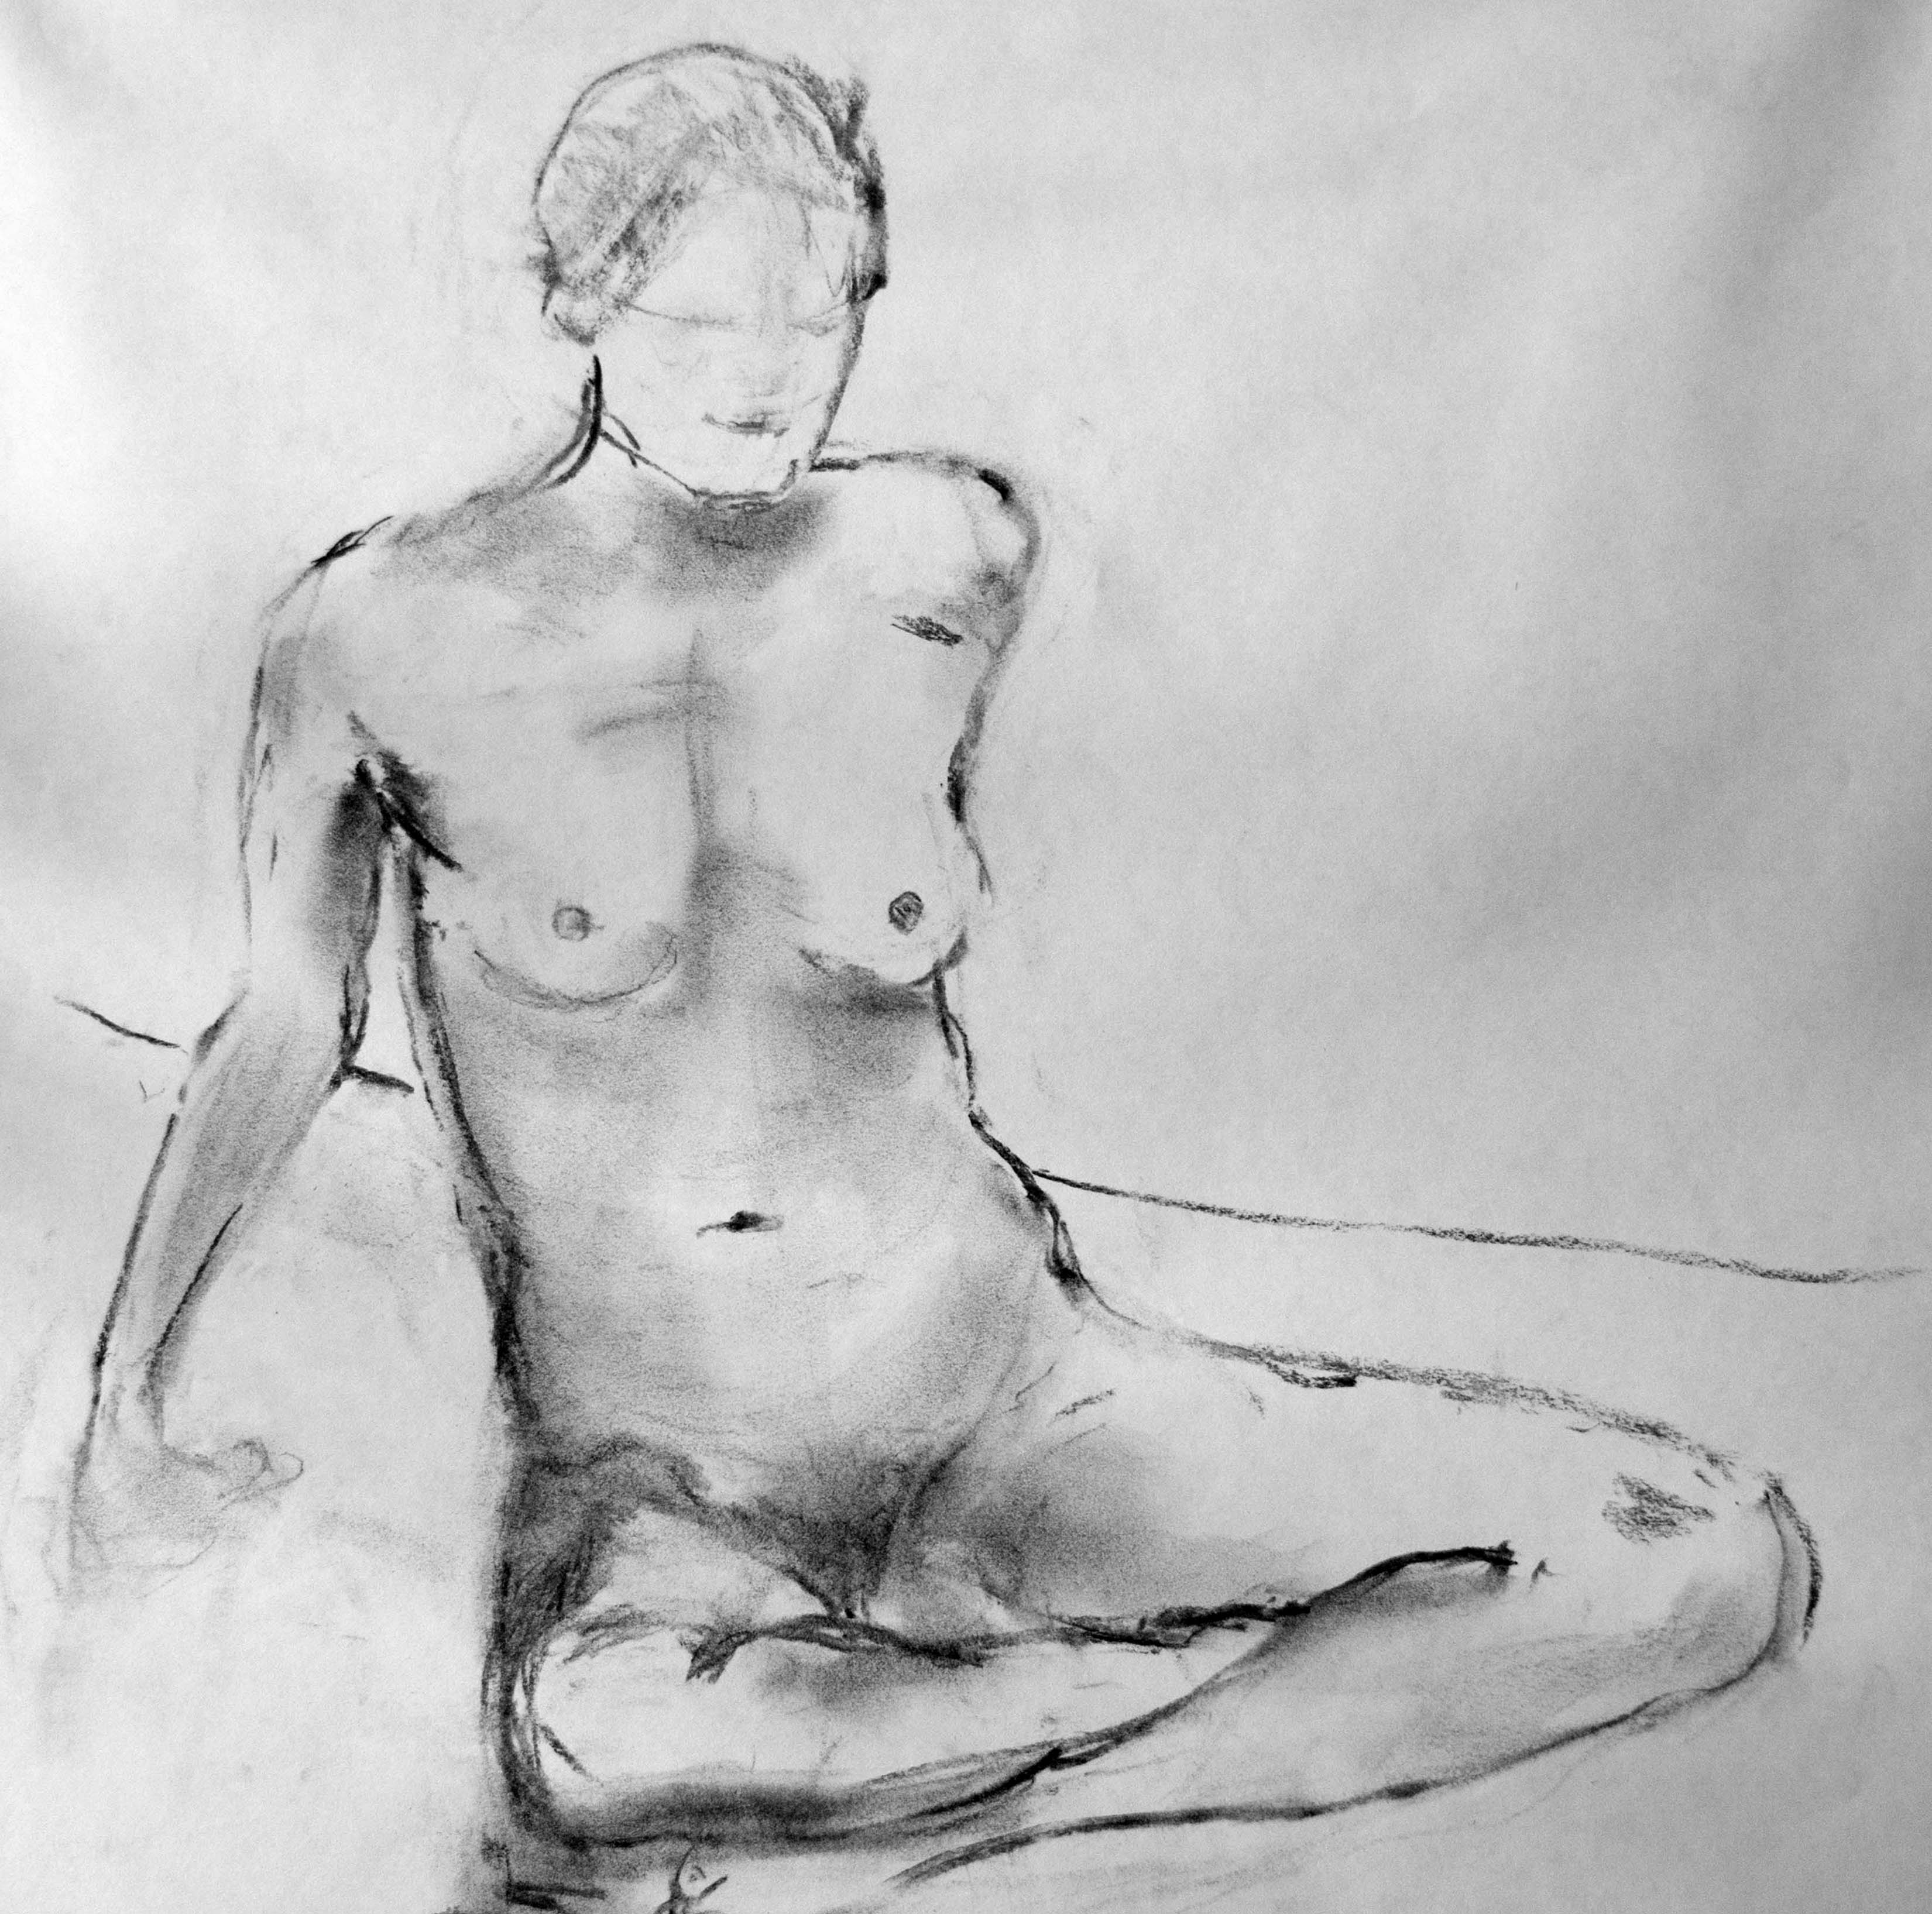 Figure in charcoal #2